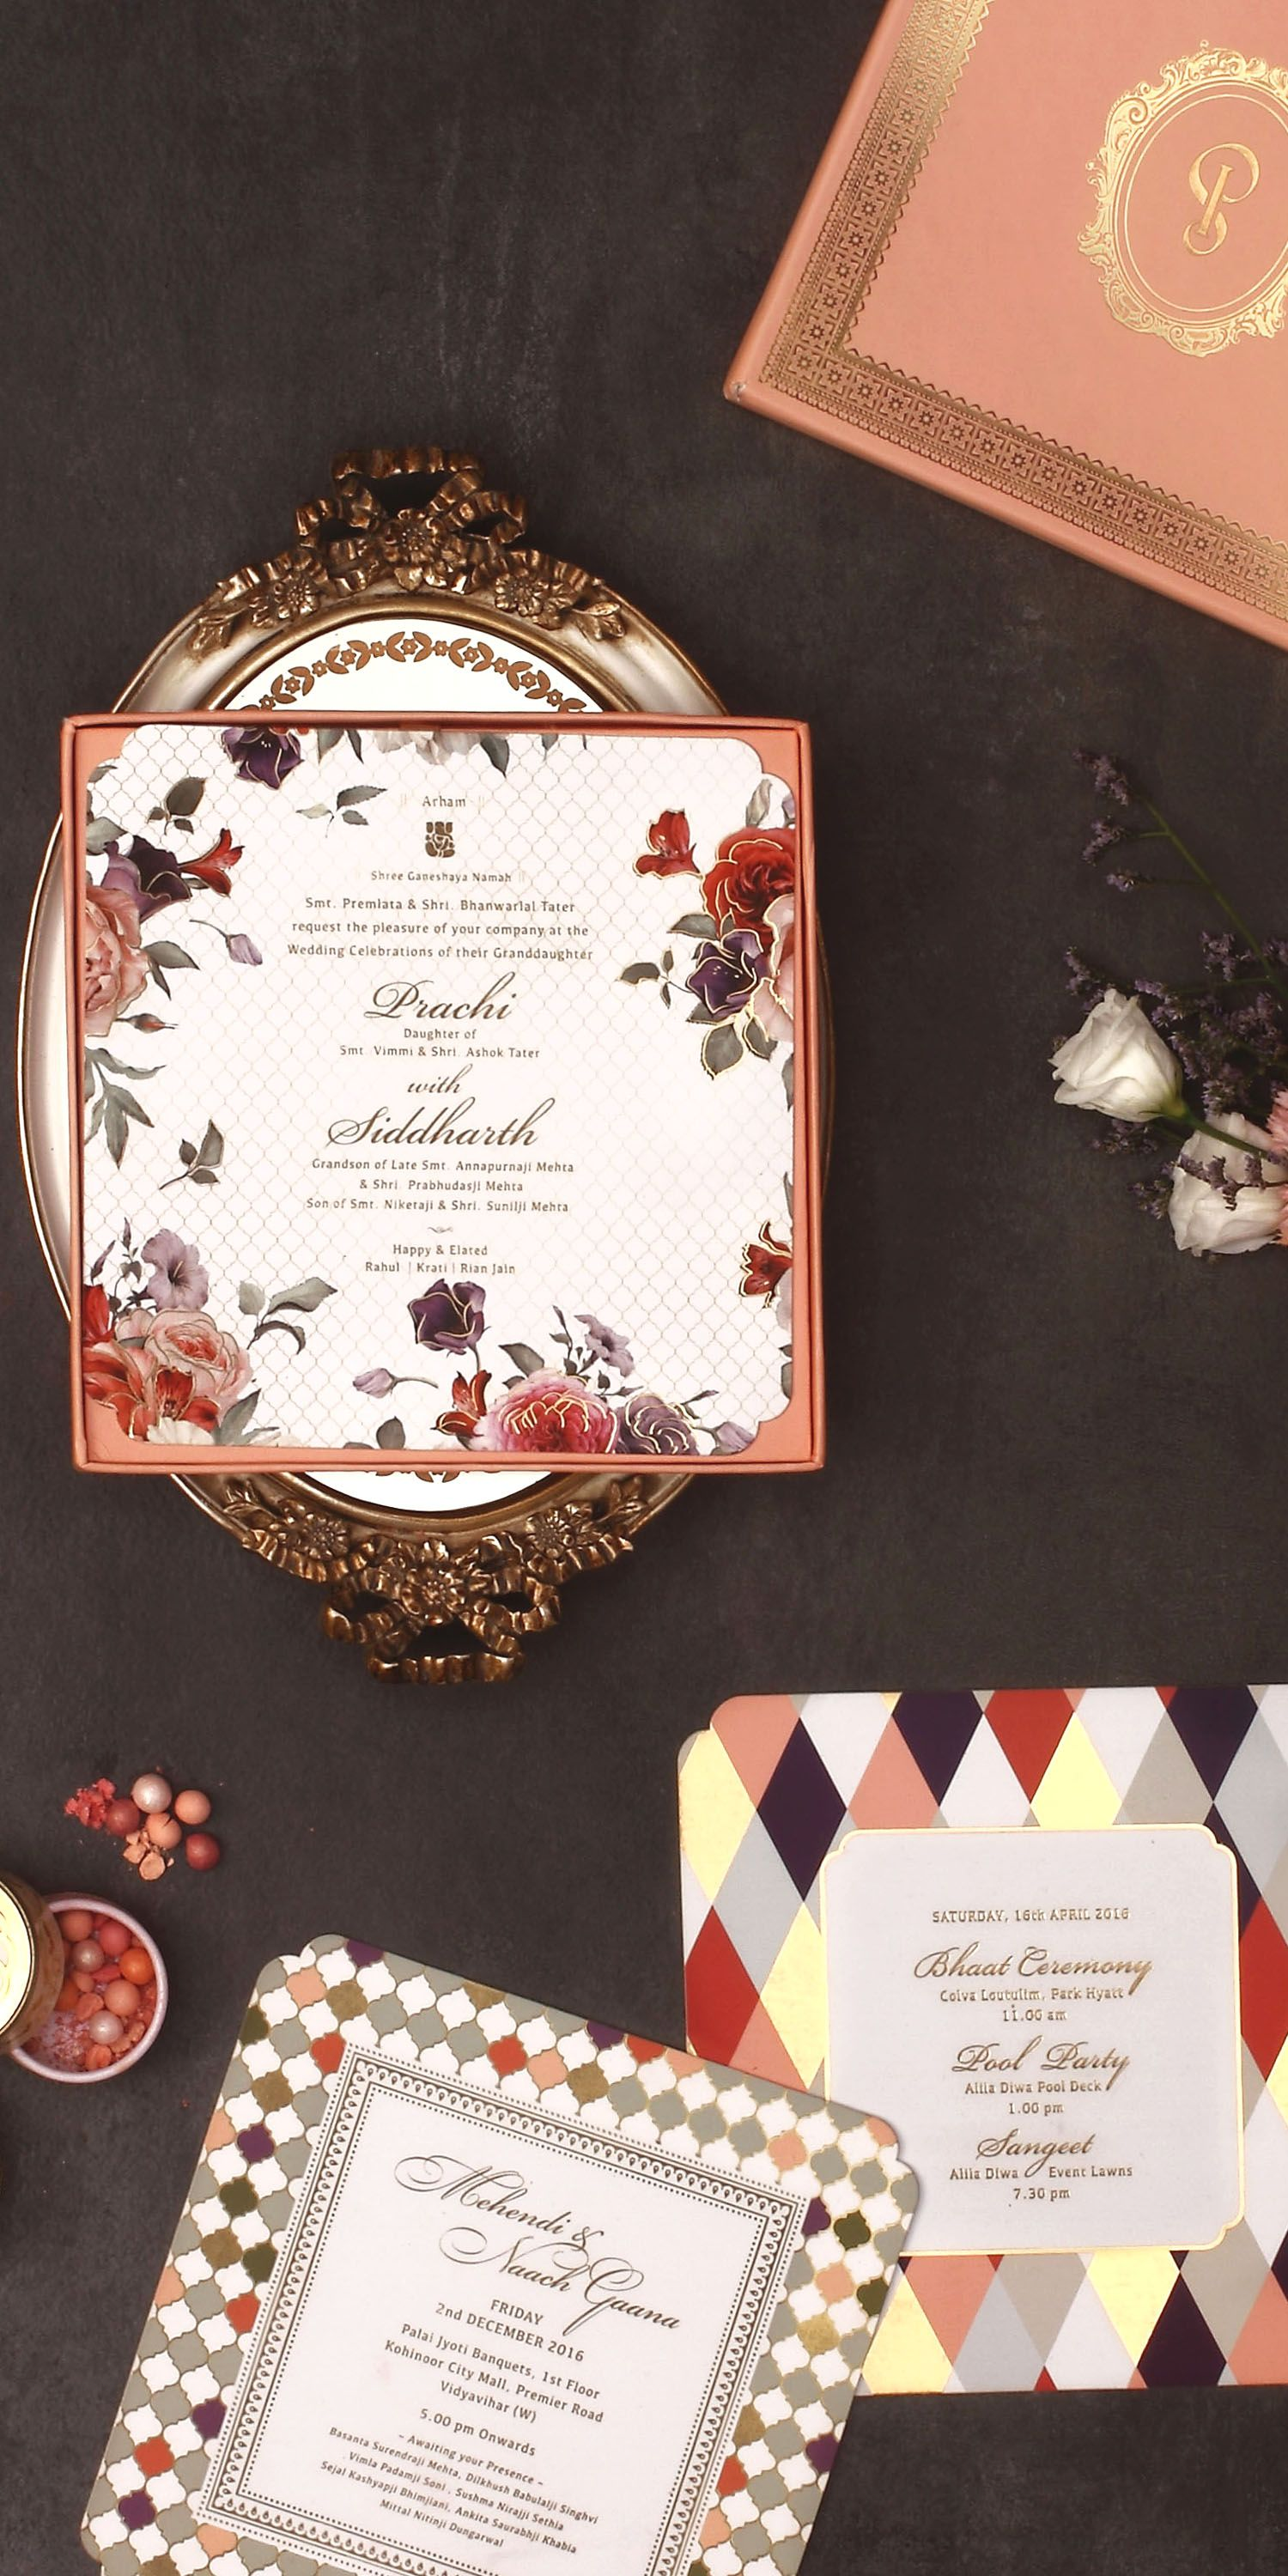 Image by Artsy Design Co on French Inspired Wedding